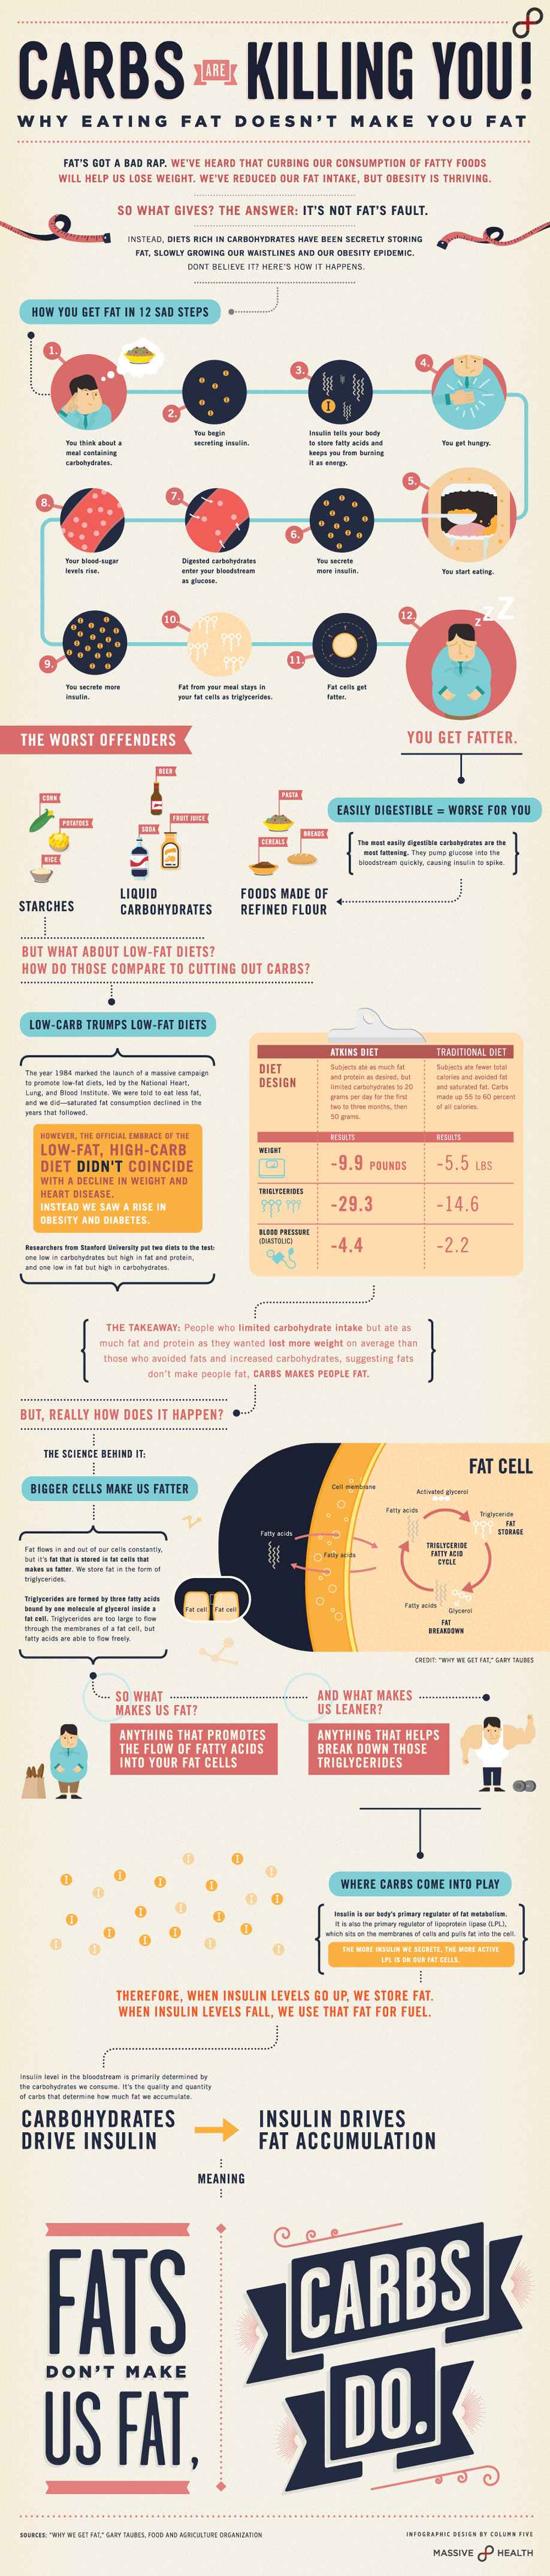 9 awesome infographic design examples (plus tips to create your own)